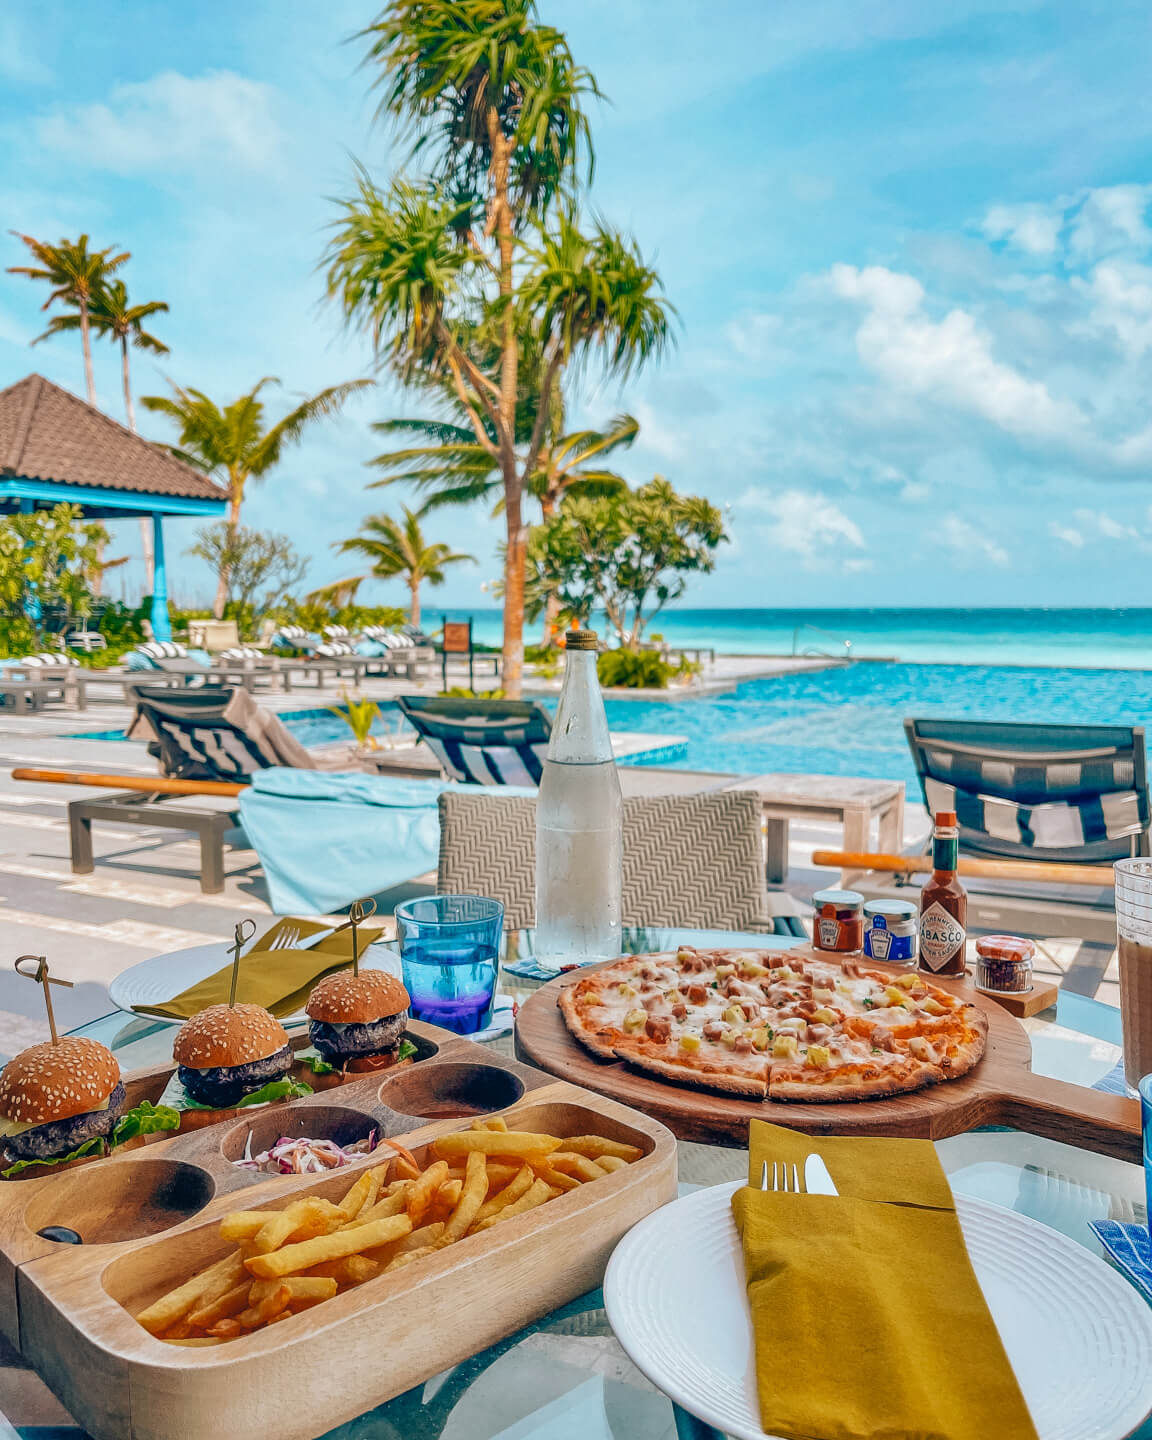 mini burgers and pizza for lunch at the pool bar of the SAii Lagoon Maldives